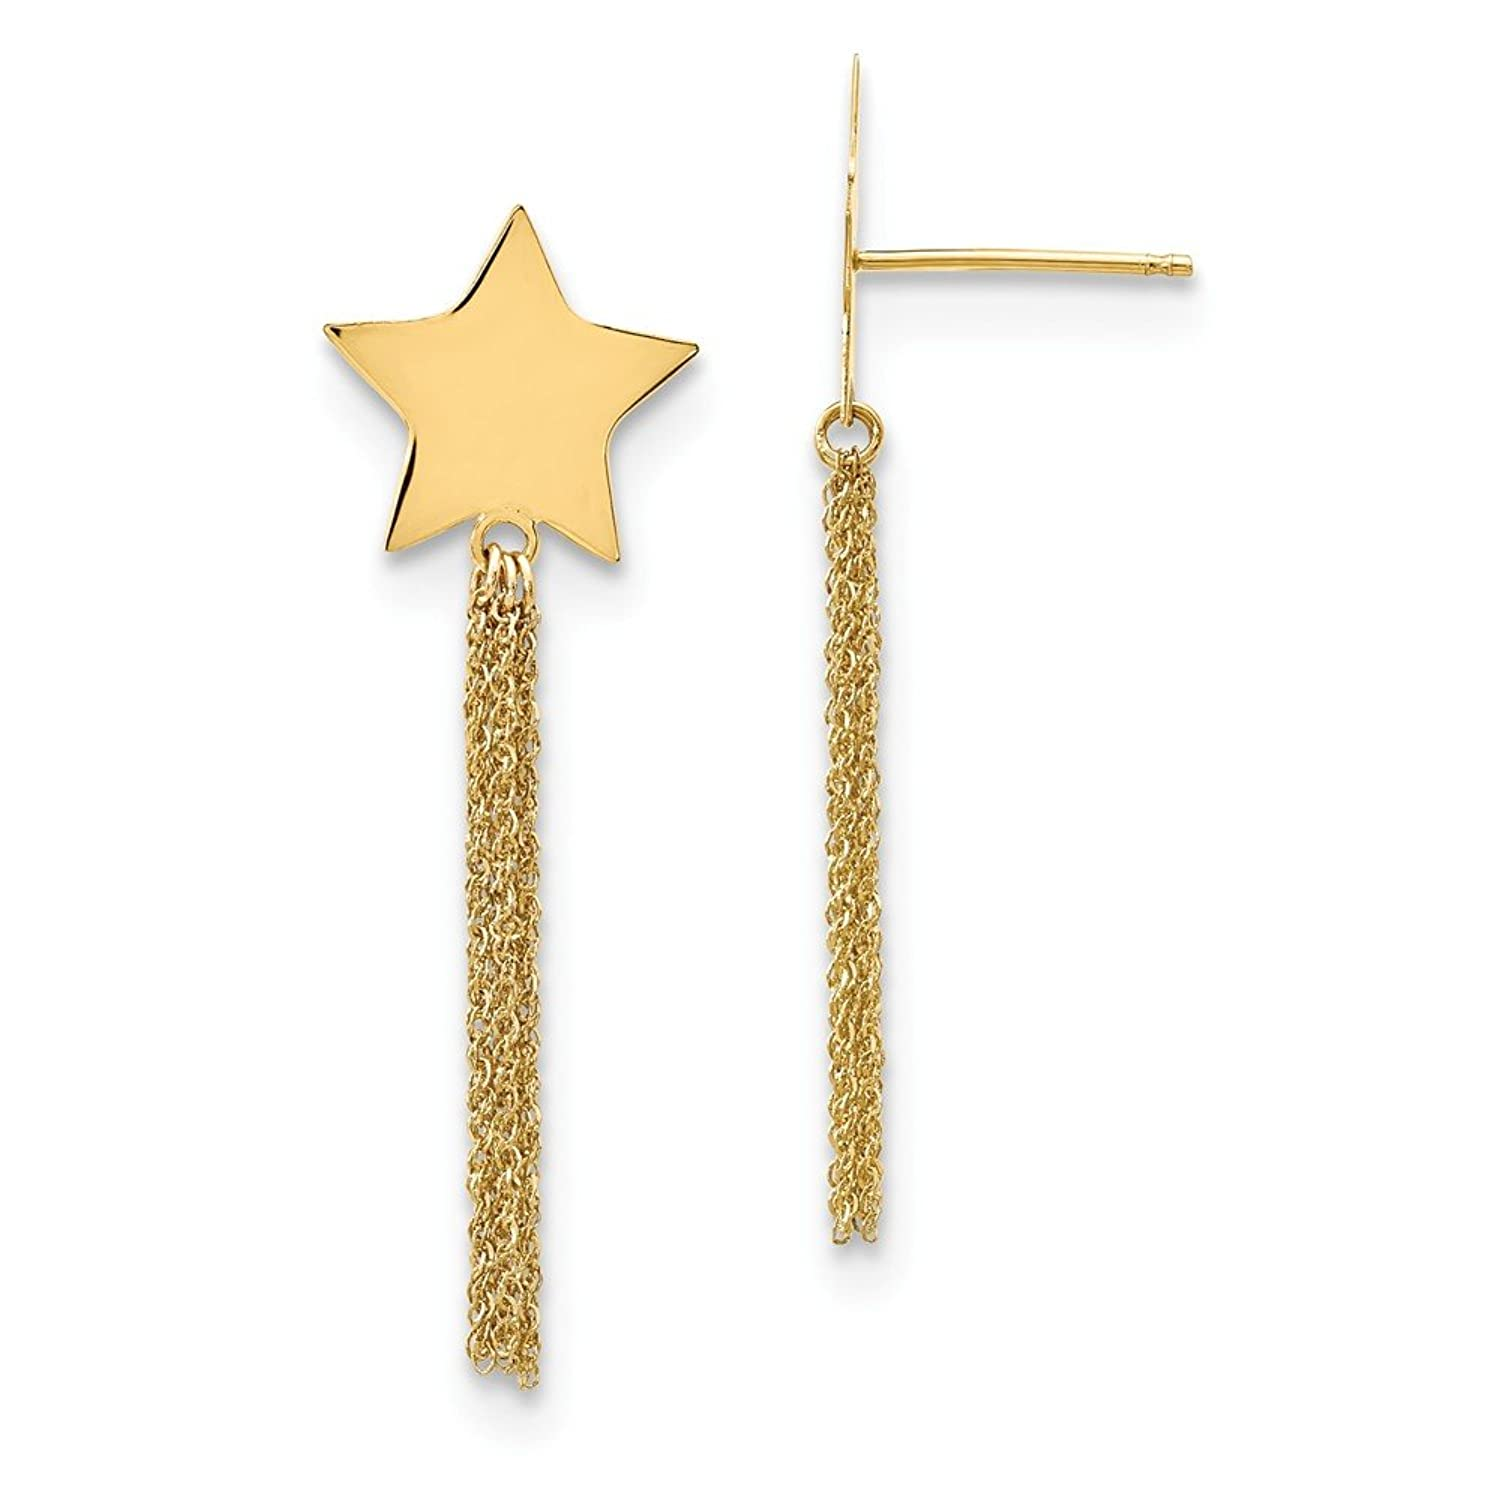 Genuine 14k Yellow Gold Polished Star w/Chain Necklace Tassle Post Earrings 39 mm